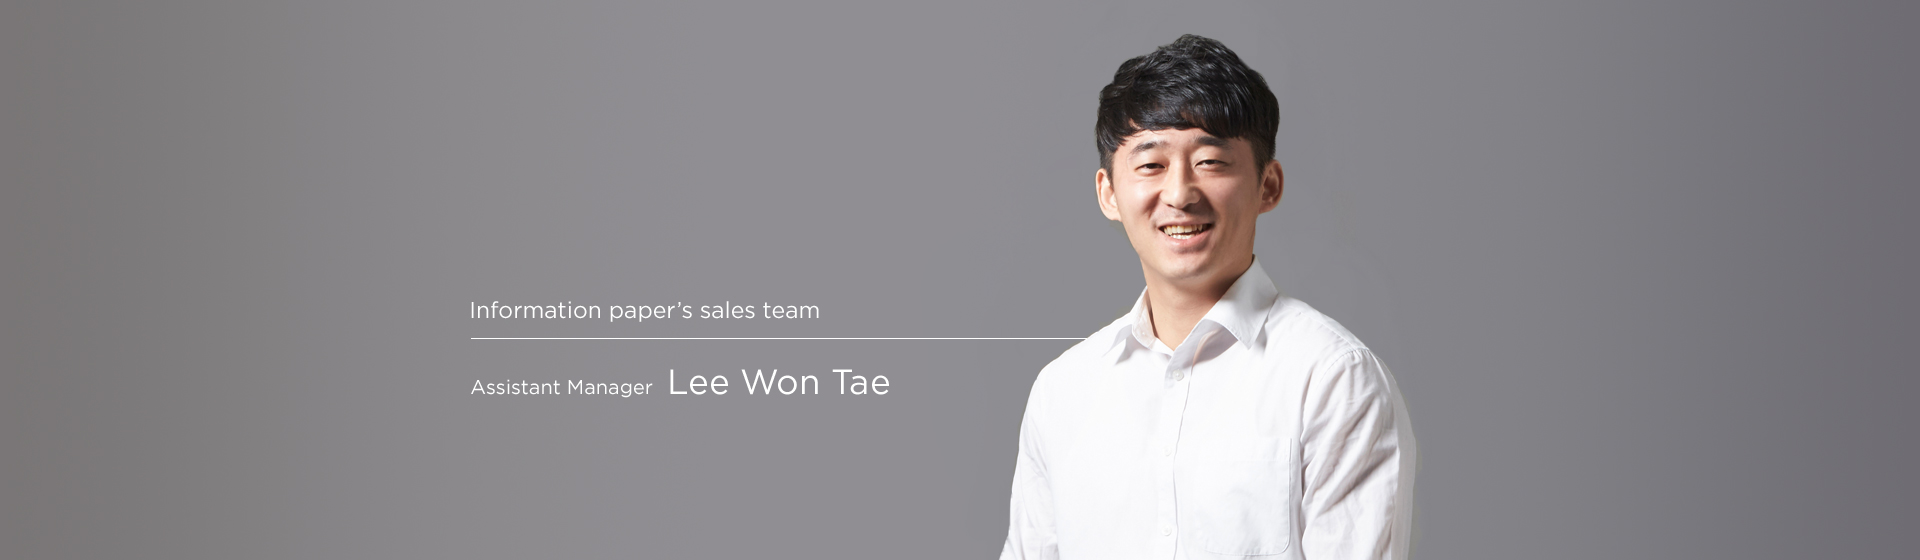 Domestic sales - Wontae Lee Assistant Manager